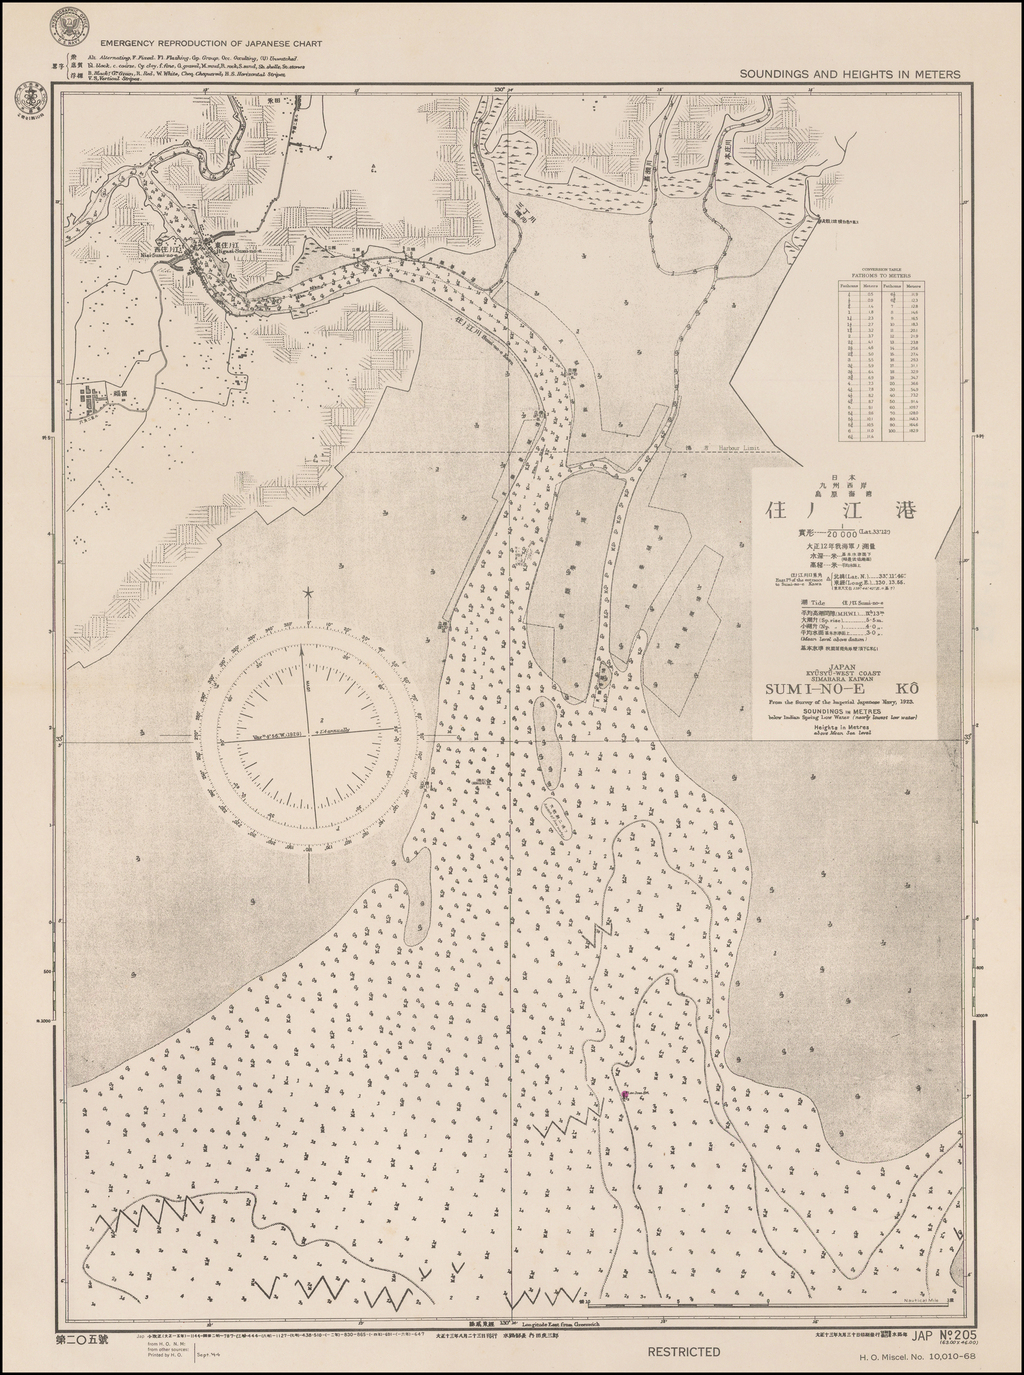 Emergency Reproduction of Japanese Chart: Japan Kyusyu-West Coast Simabara Kaiwan Sumi-No-E Ko From the Survey of the Imperial Japanese Navy, 1923. By U.S. Navy Hydrographic Office